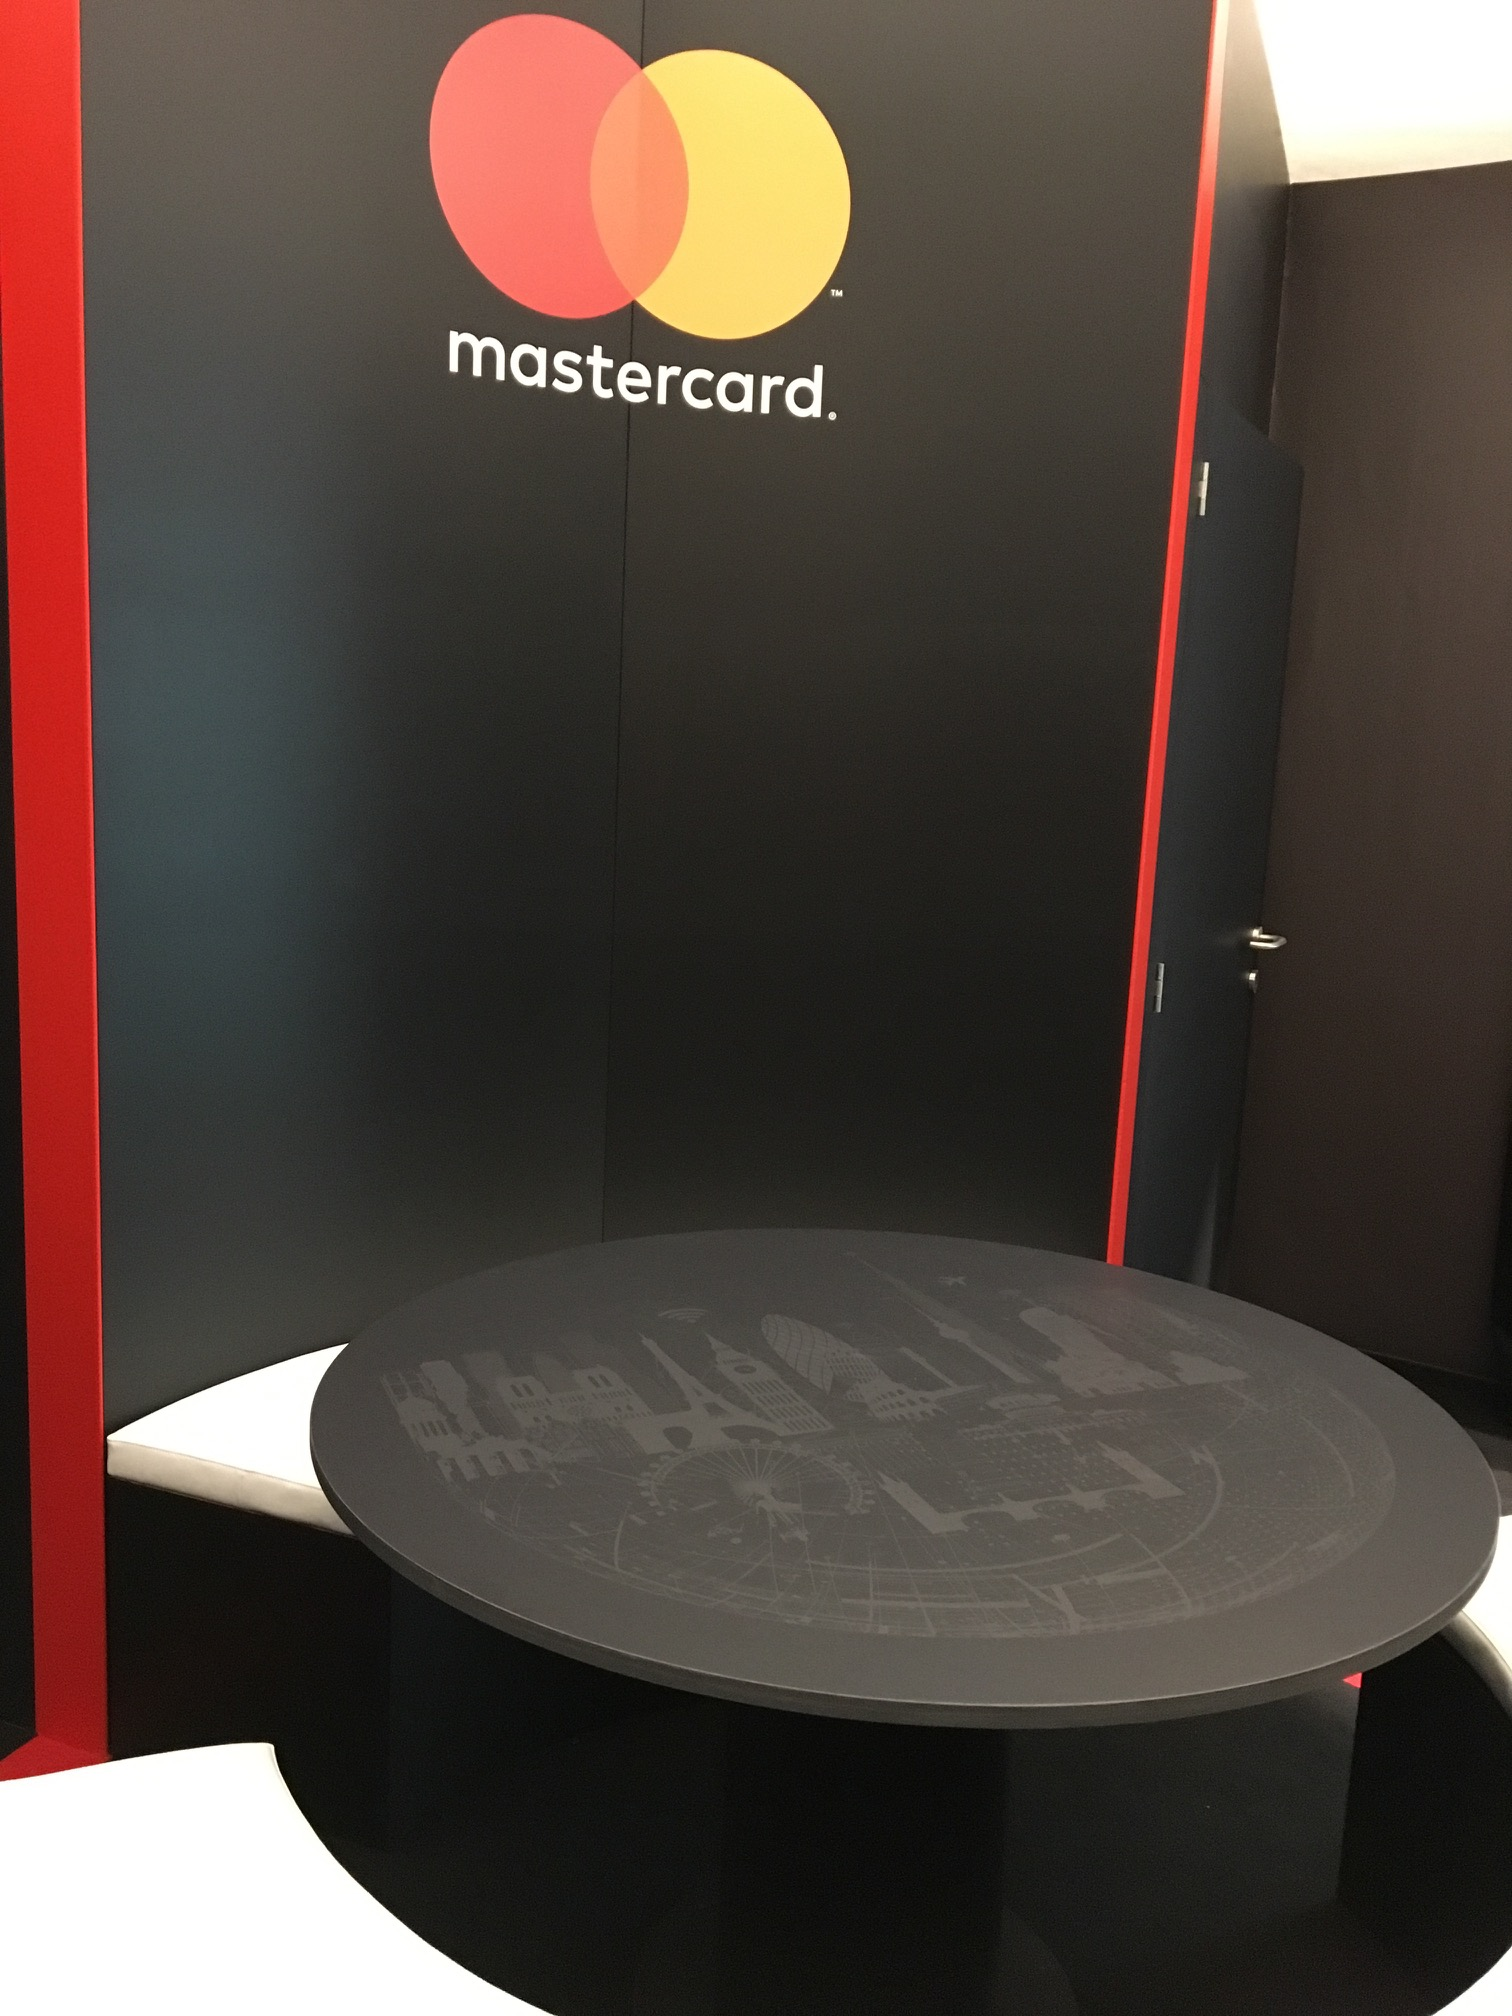 mastercard-smart-city-barcelona-2016-3